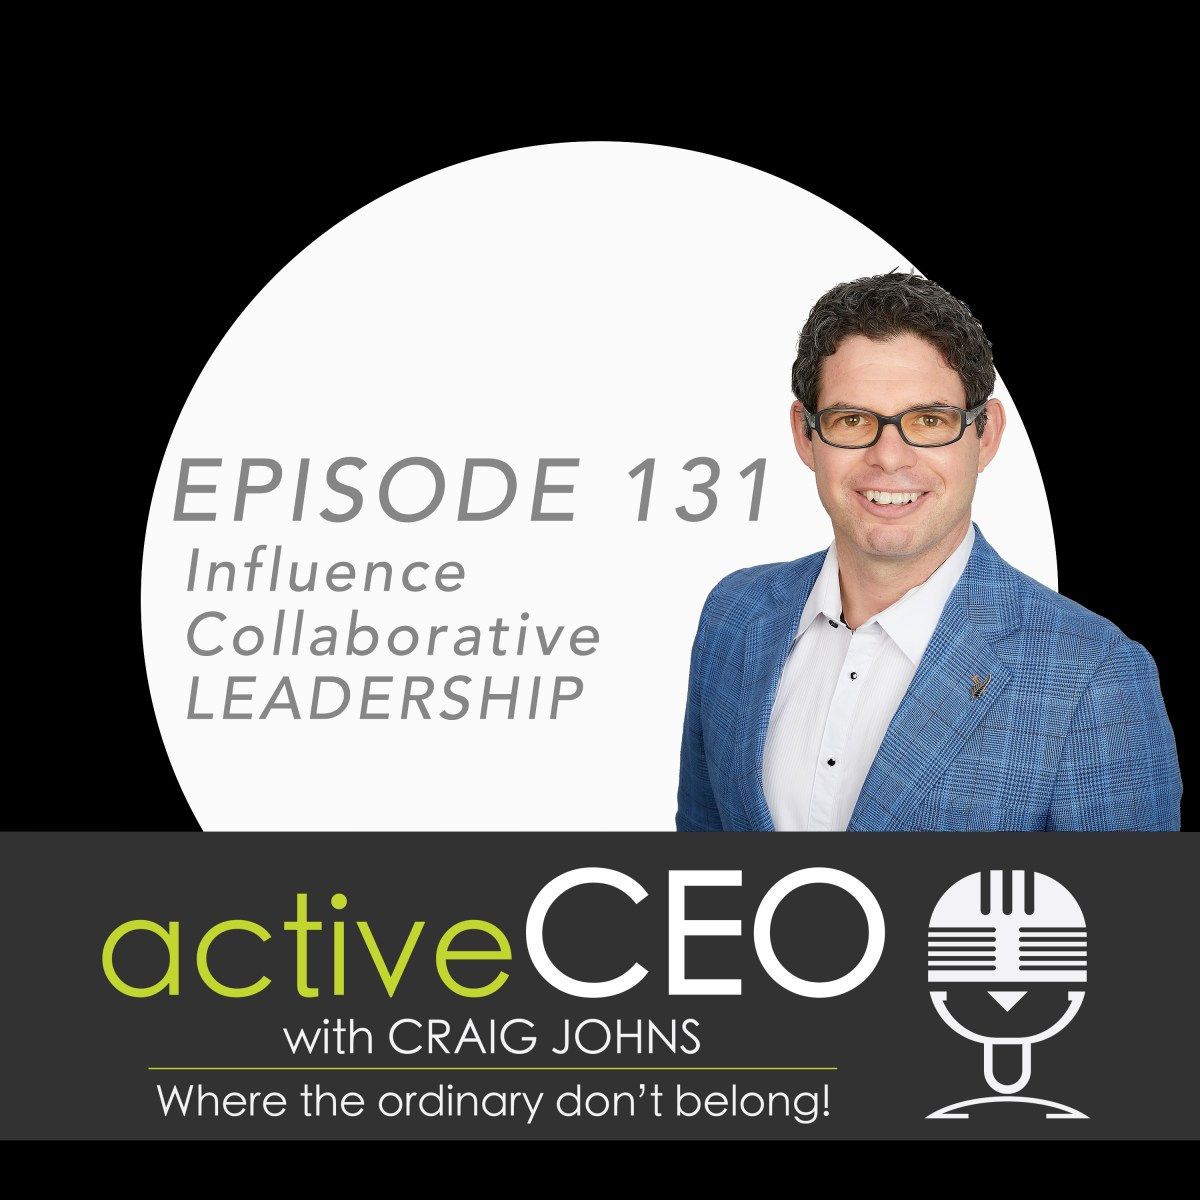 active CEO Podcast 131 Influence Collaborative Leadership